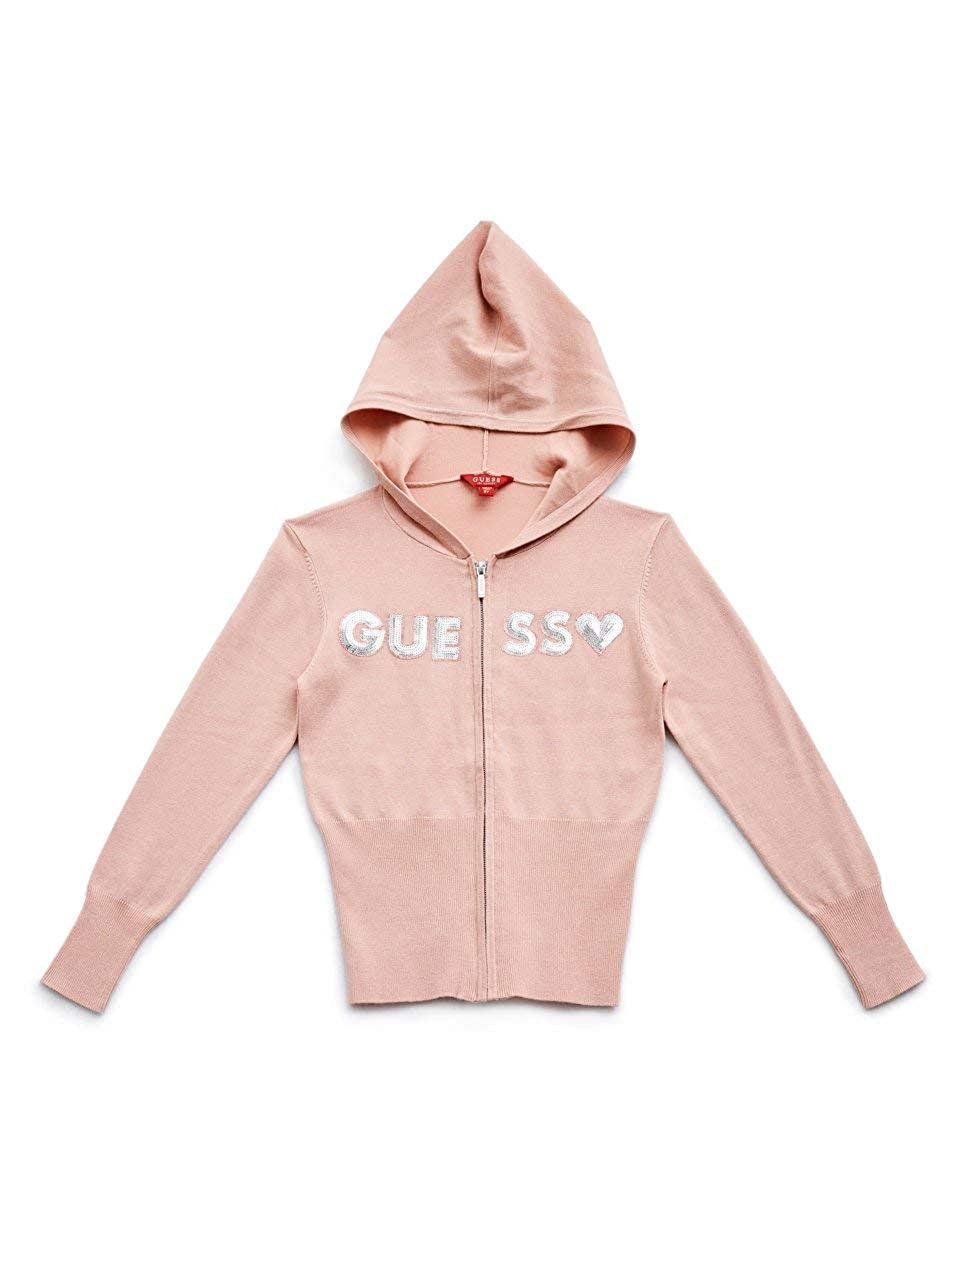 7-16 GUESS Factory Kids Girls Everly Sequin Logo Hoodie